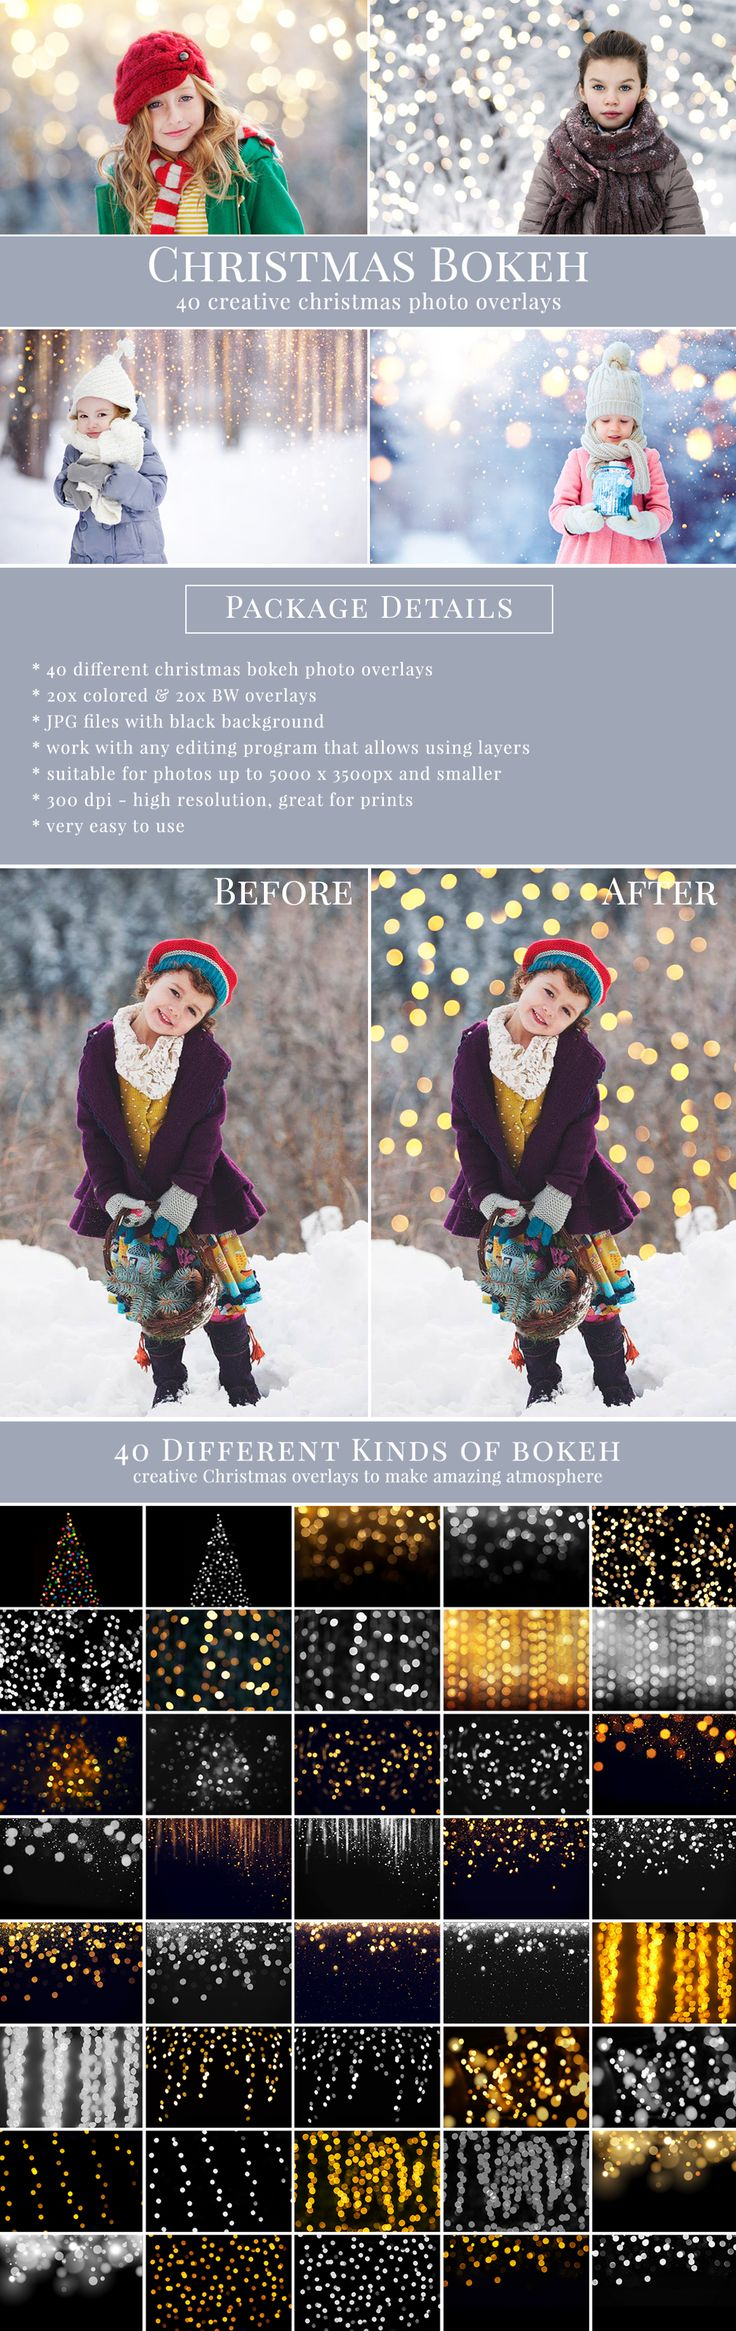 CHRISTMAS BOKEH photo overlays. Great for holiday season & Christmas pictures – style amazing scenes with fabulous atmosphere PACKAGE DETAILS: - 40 different Christmas bokeh photo overlays - JPG files with black background  - super easy to apply #brownleopard #photooverlays #christmasoverlays #christmasphotography #christmasphoto #holidayphotography #holidayminisessions #bokehoverlays